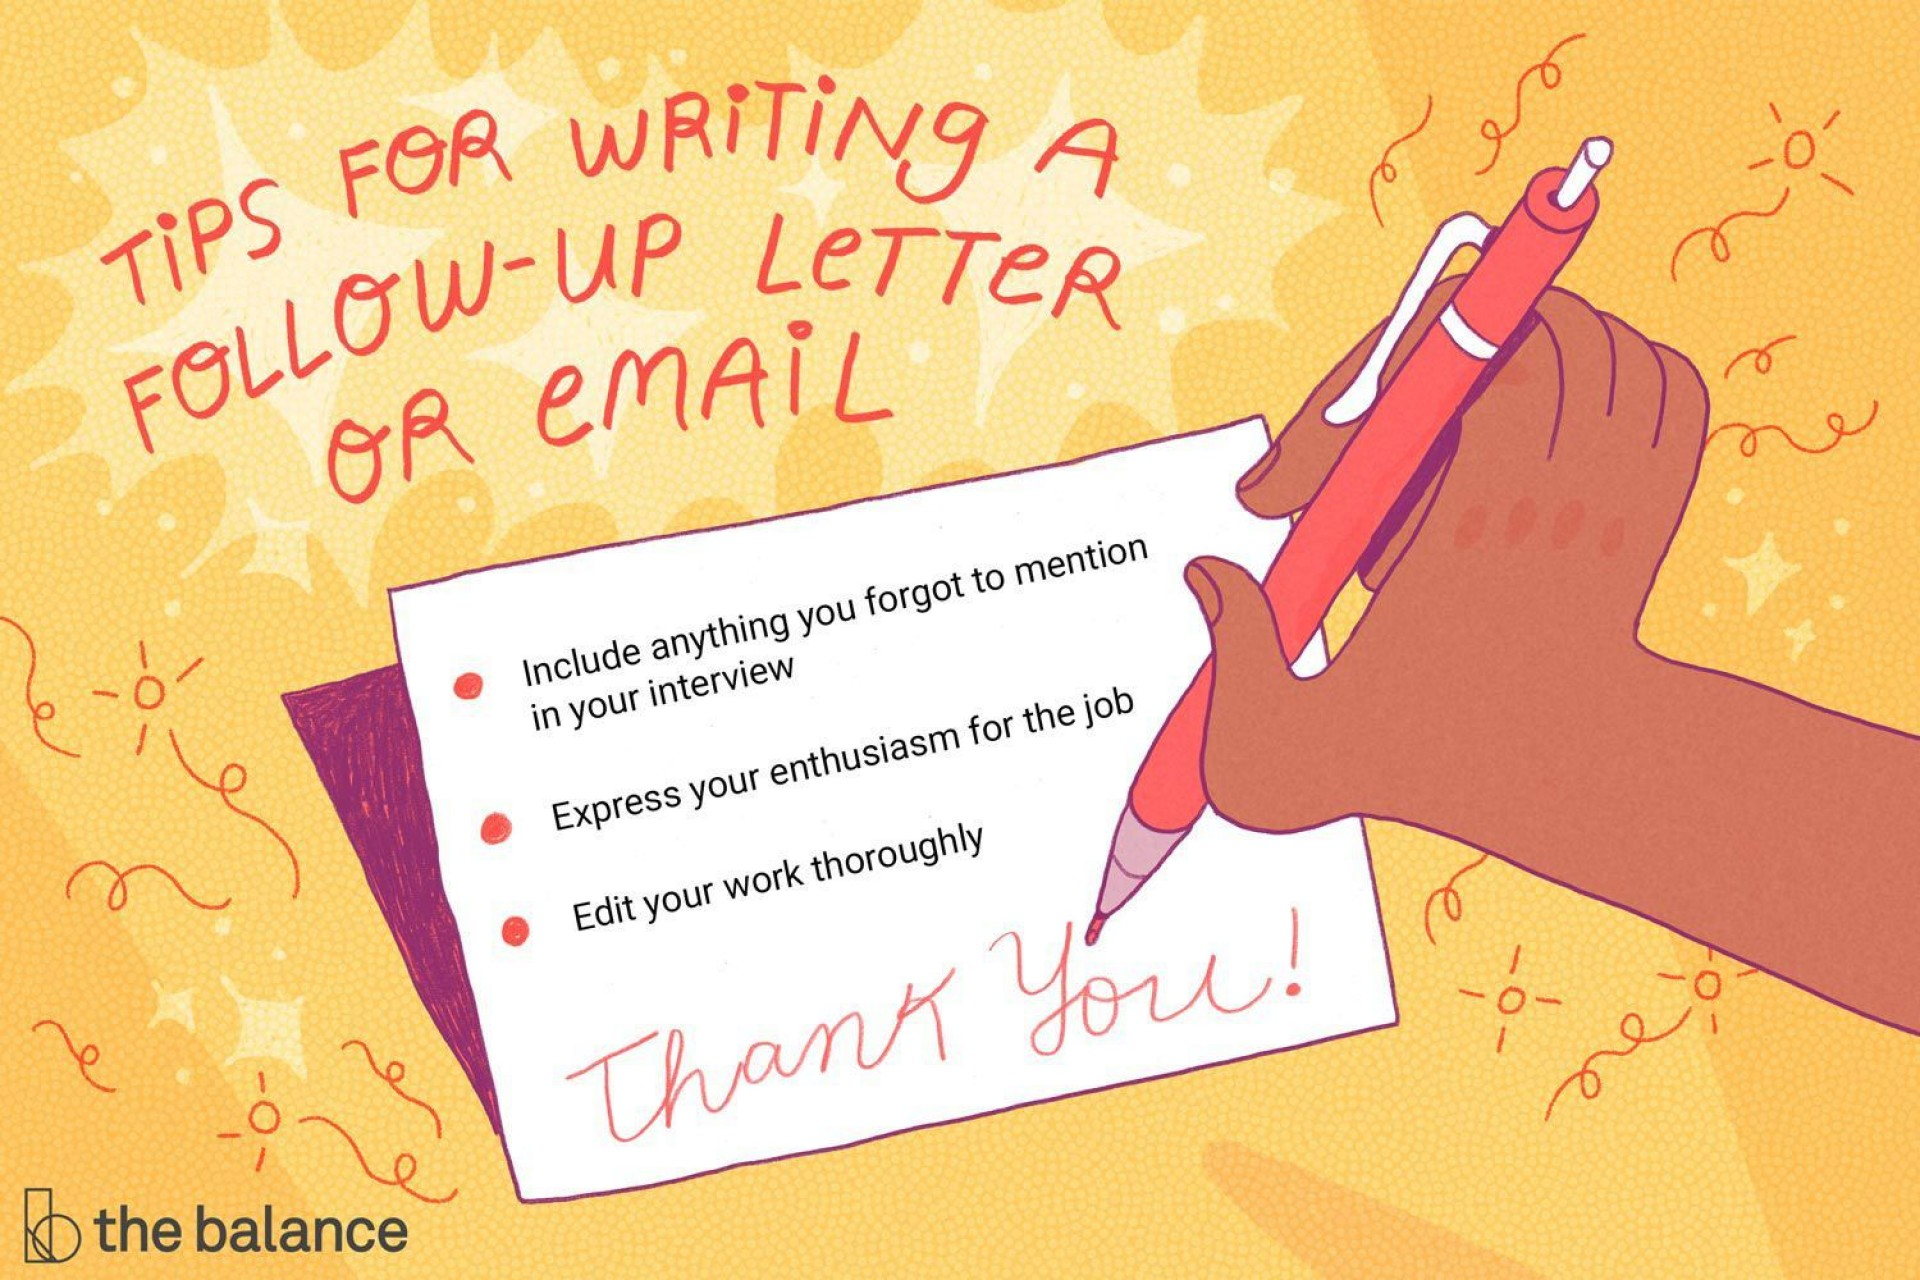 005 Stupendou Write Follow Up Email After No Response Highest Clarity 1920